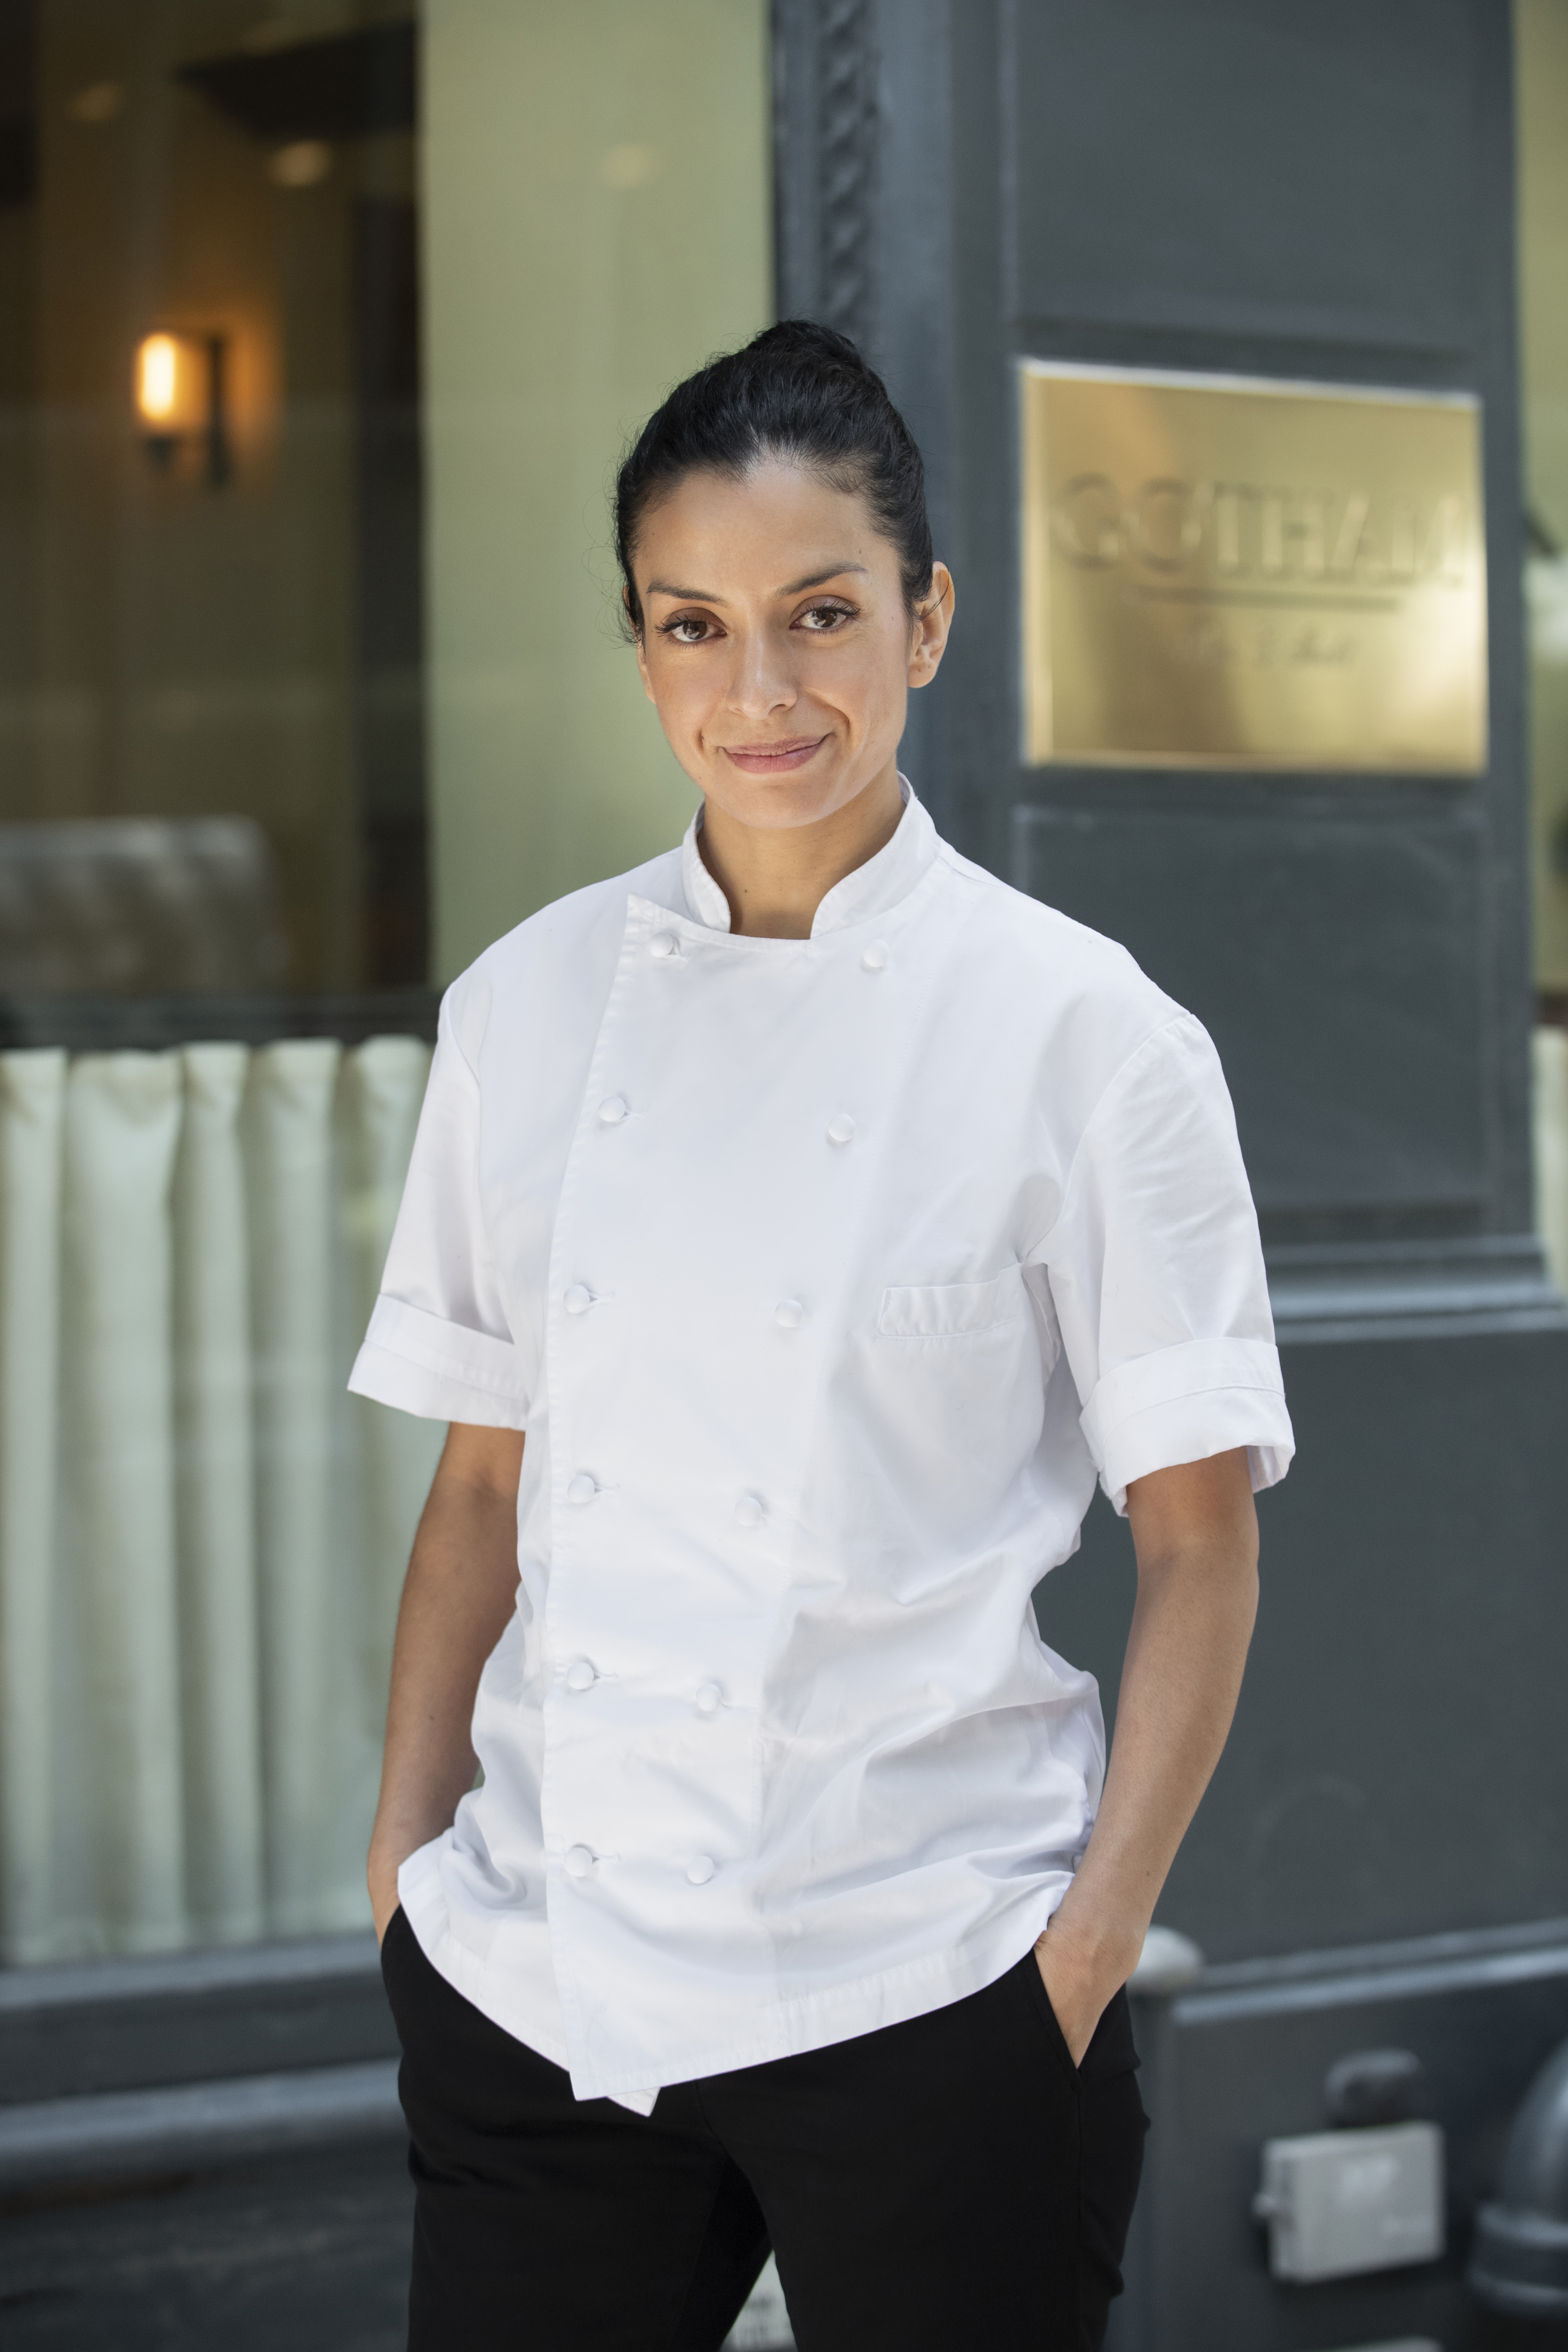 Victoria Blamey poses in a chef's jacket in front of Gotham Bar & Grill